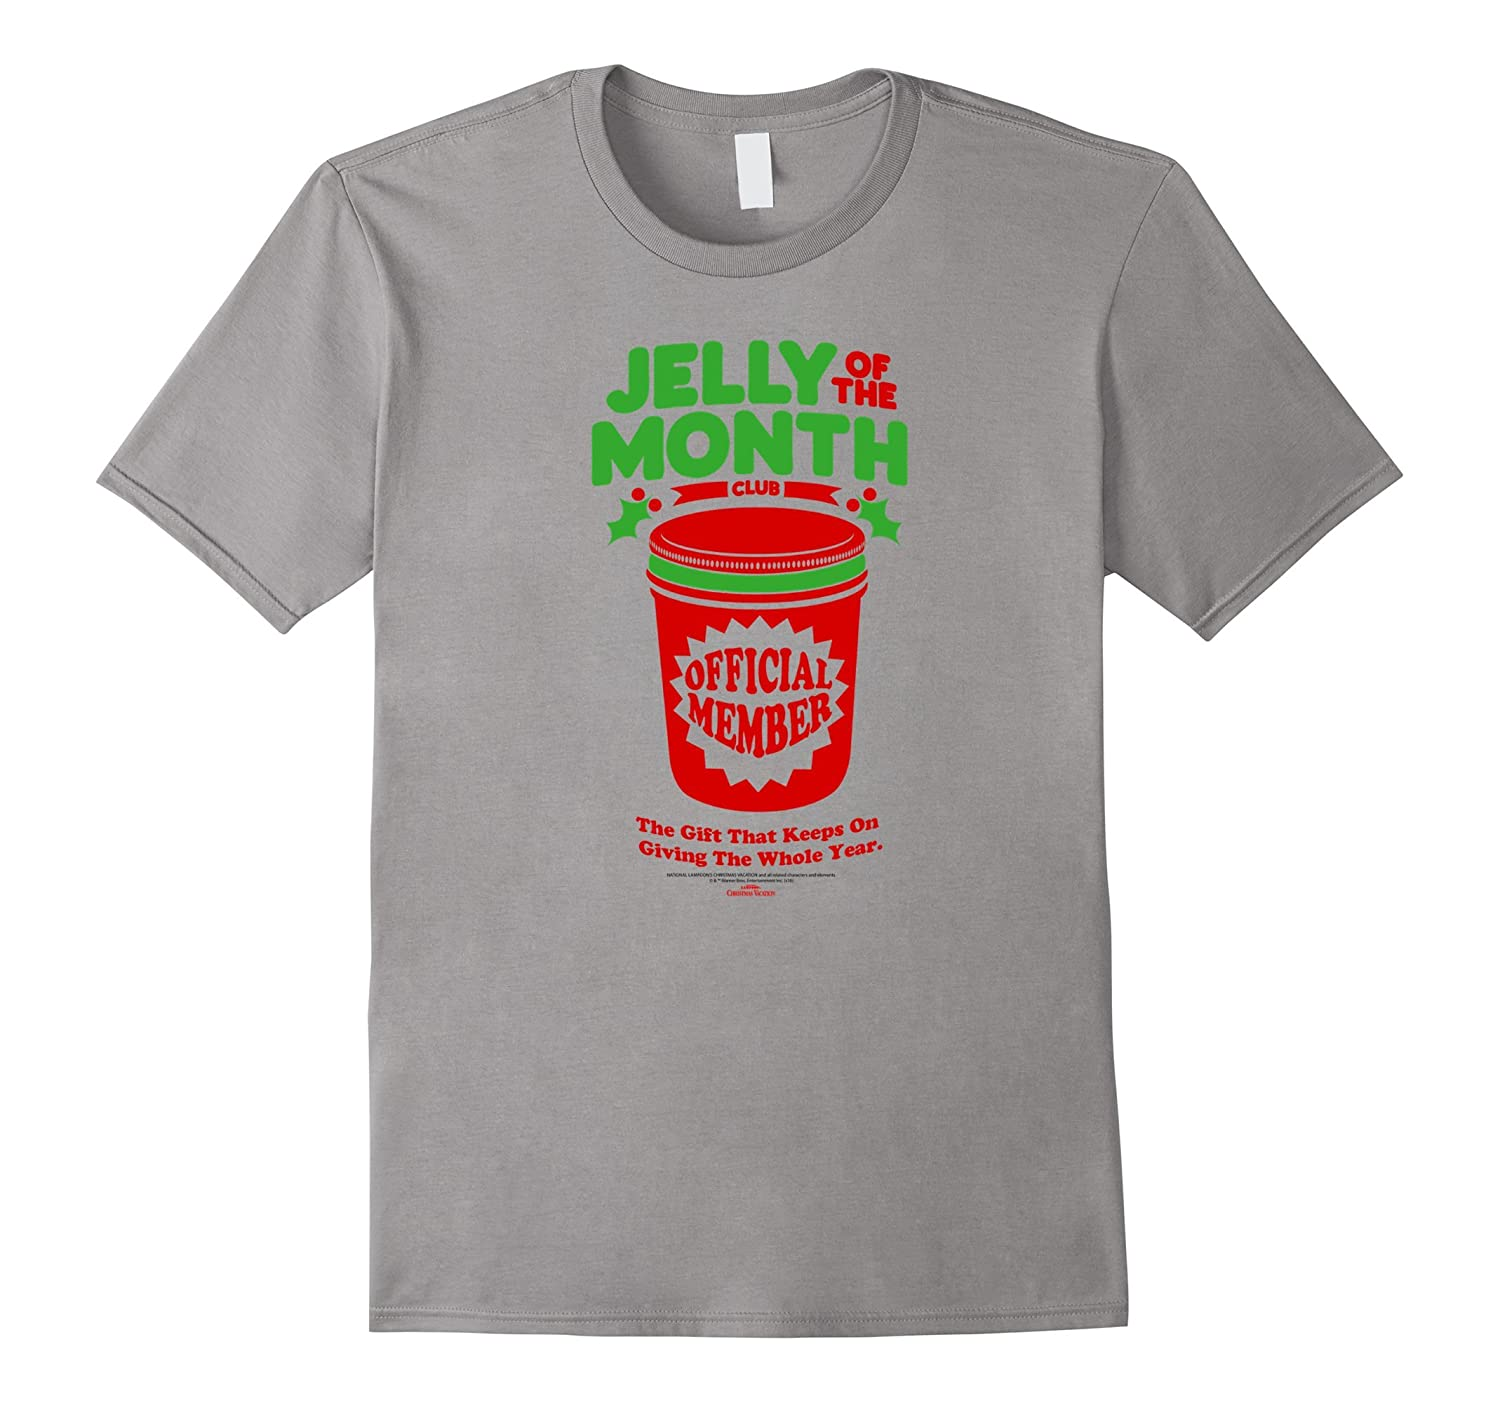 christmas vacation jelly of the month club bn - Jelly Of The Month Club Christmas Vacation